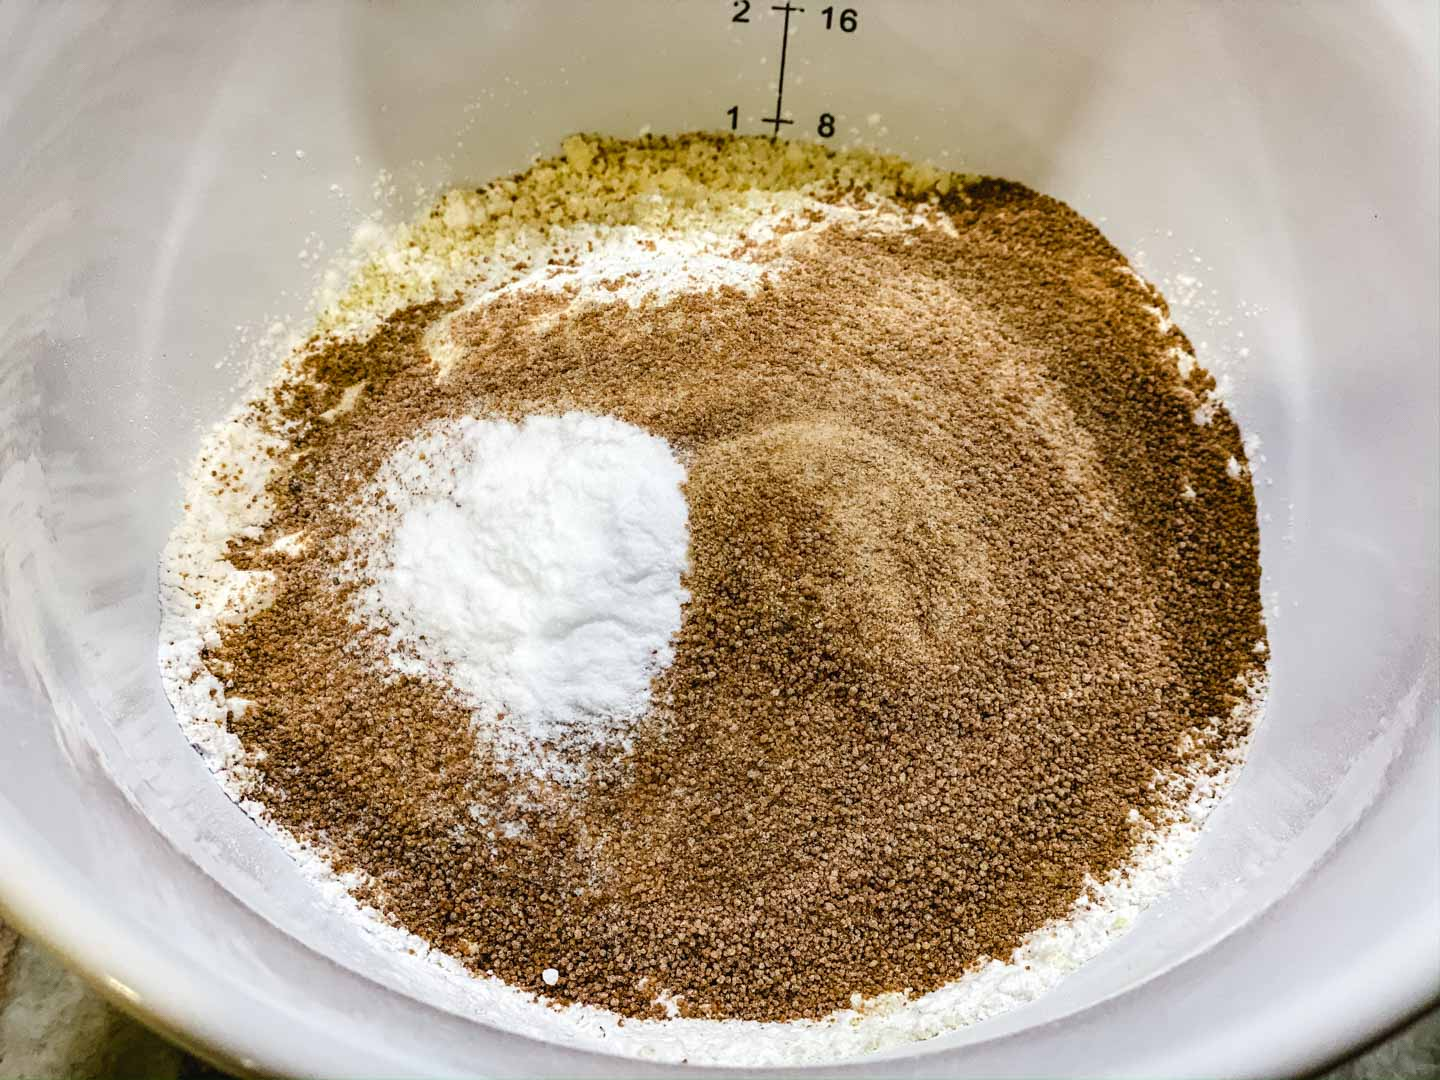 Baking flours, coconut sugar in a white bowl.